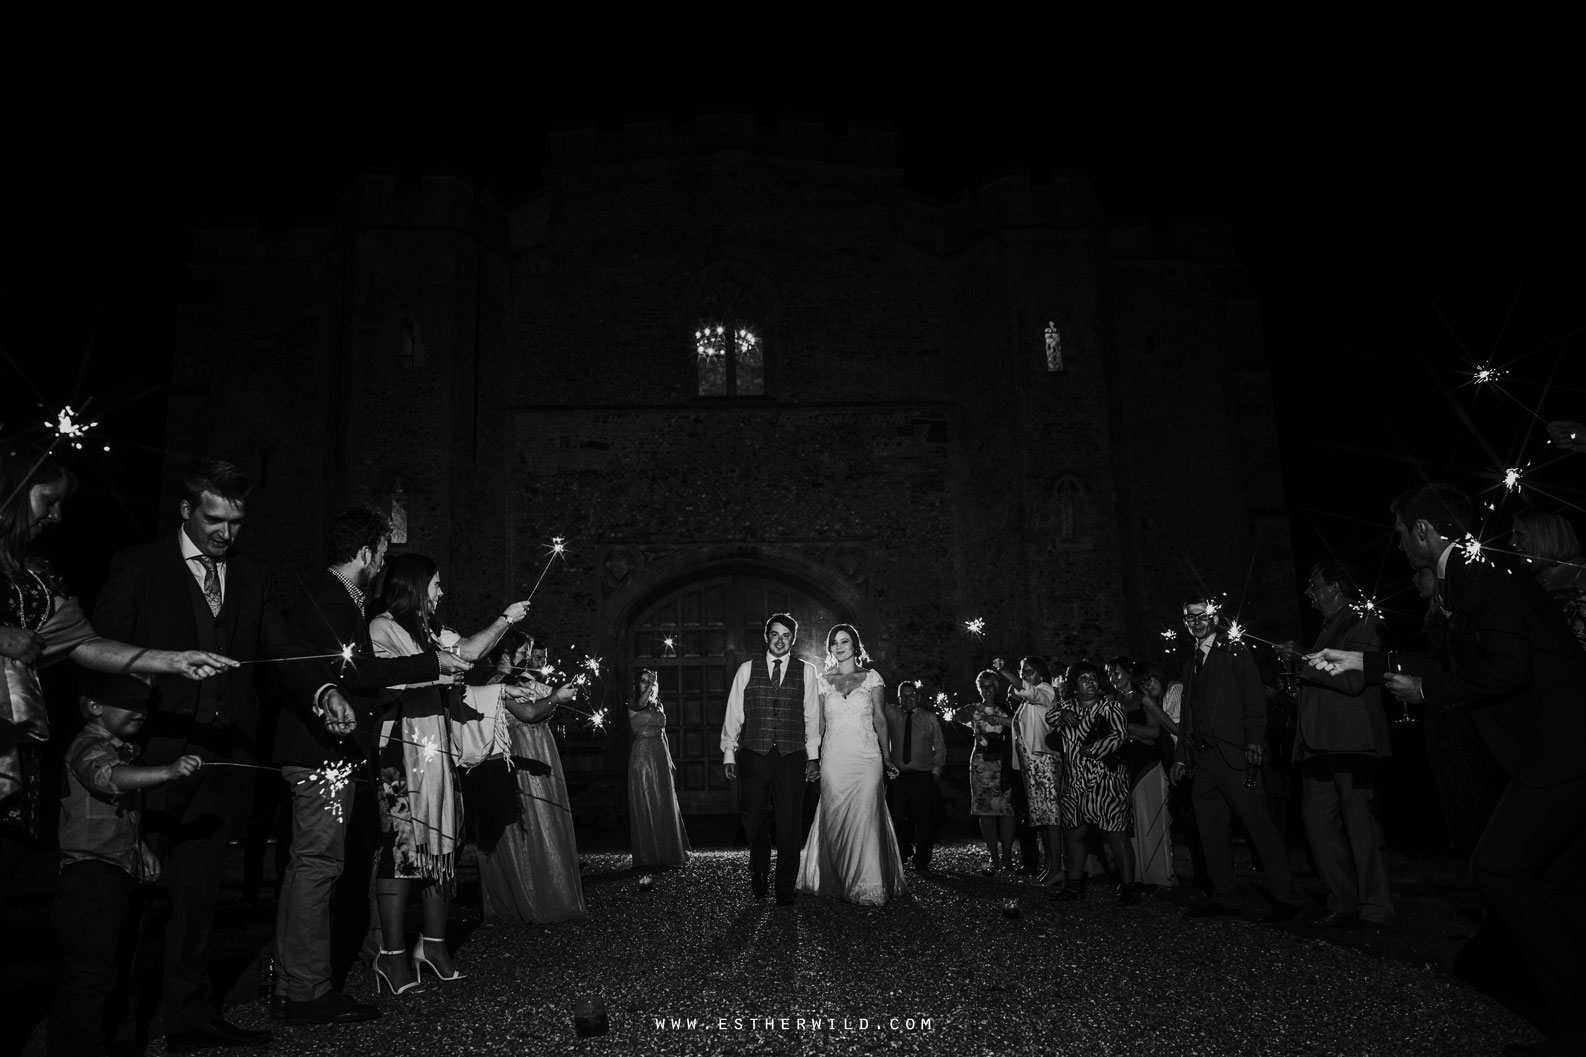 Pentney_Abbey_Wedding_Kings_Lynn_Norfolk_Esther_Wild_Wedding_Photography_IMG_1894-2.jpg